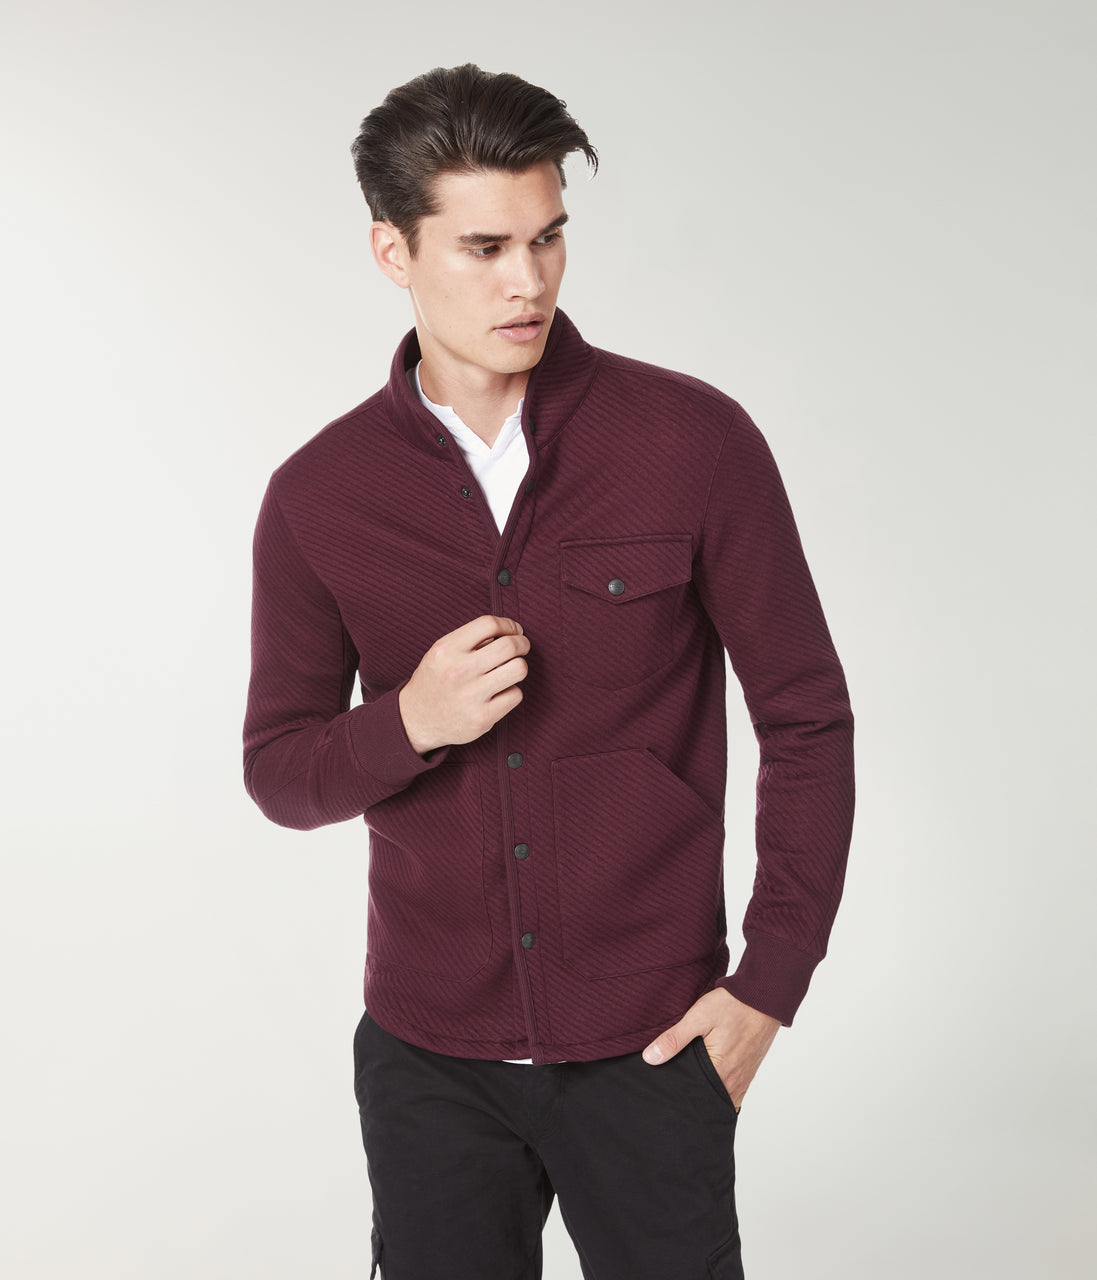 Fuji Twill Quilt Jacquard Shirt Jacket - Wine - Good Man Brand - Fuji Twill Quilt Jacquard Shirt Jacket - Wine